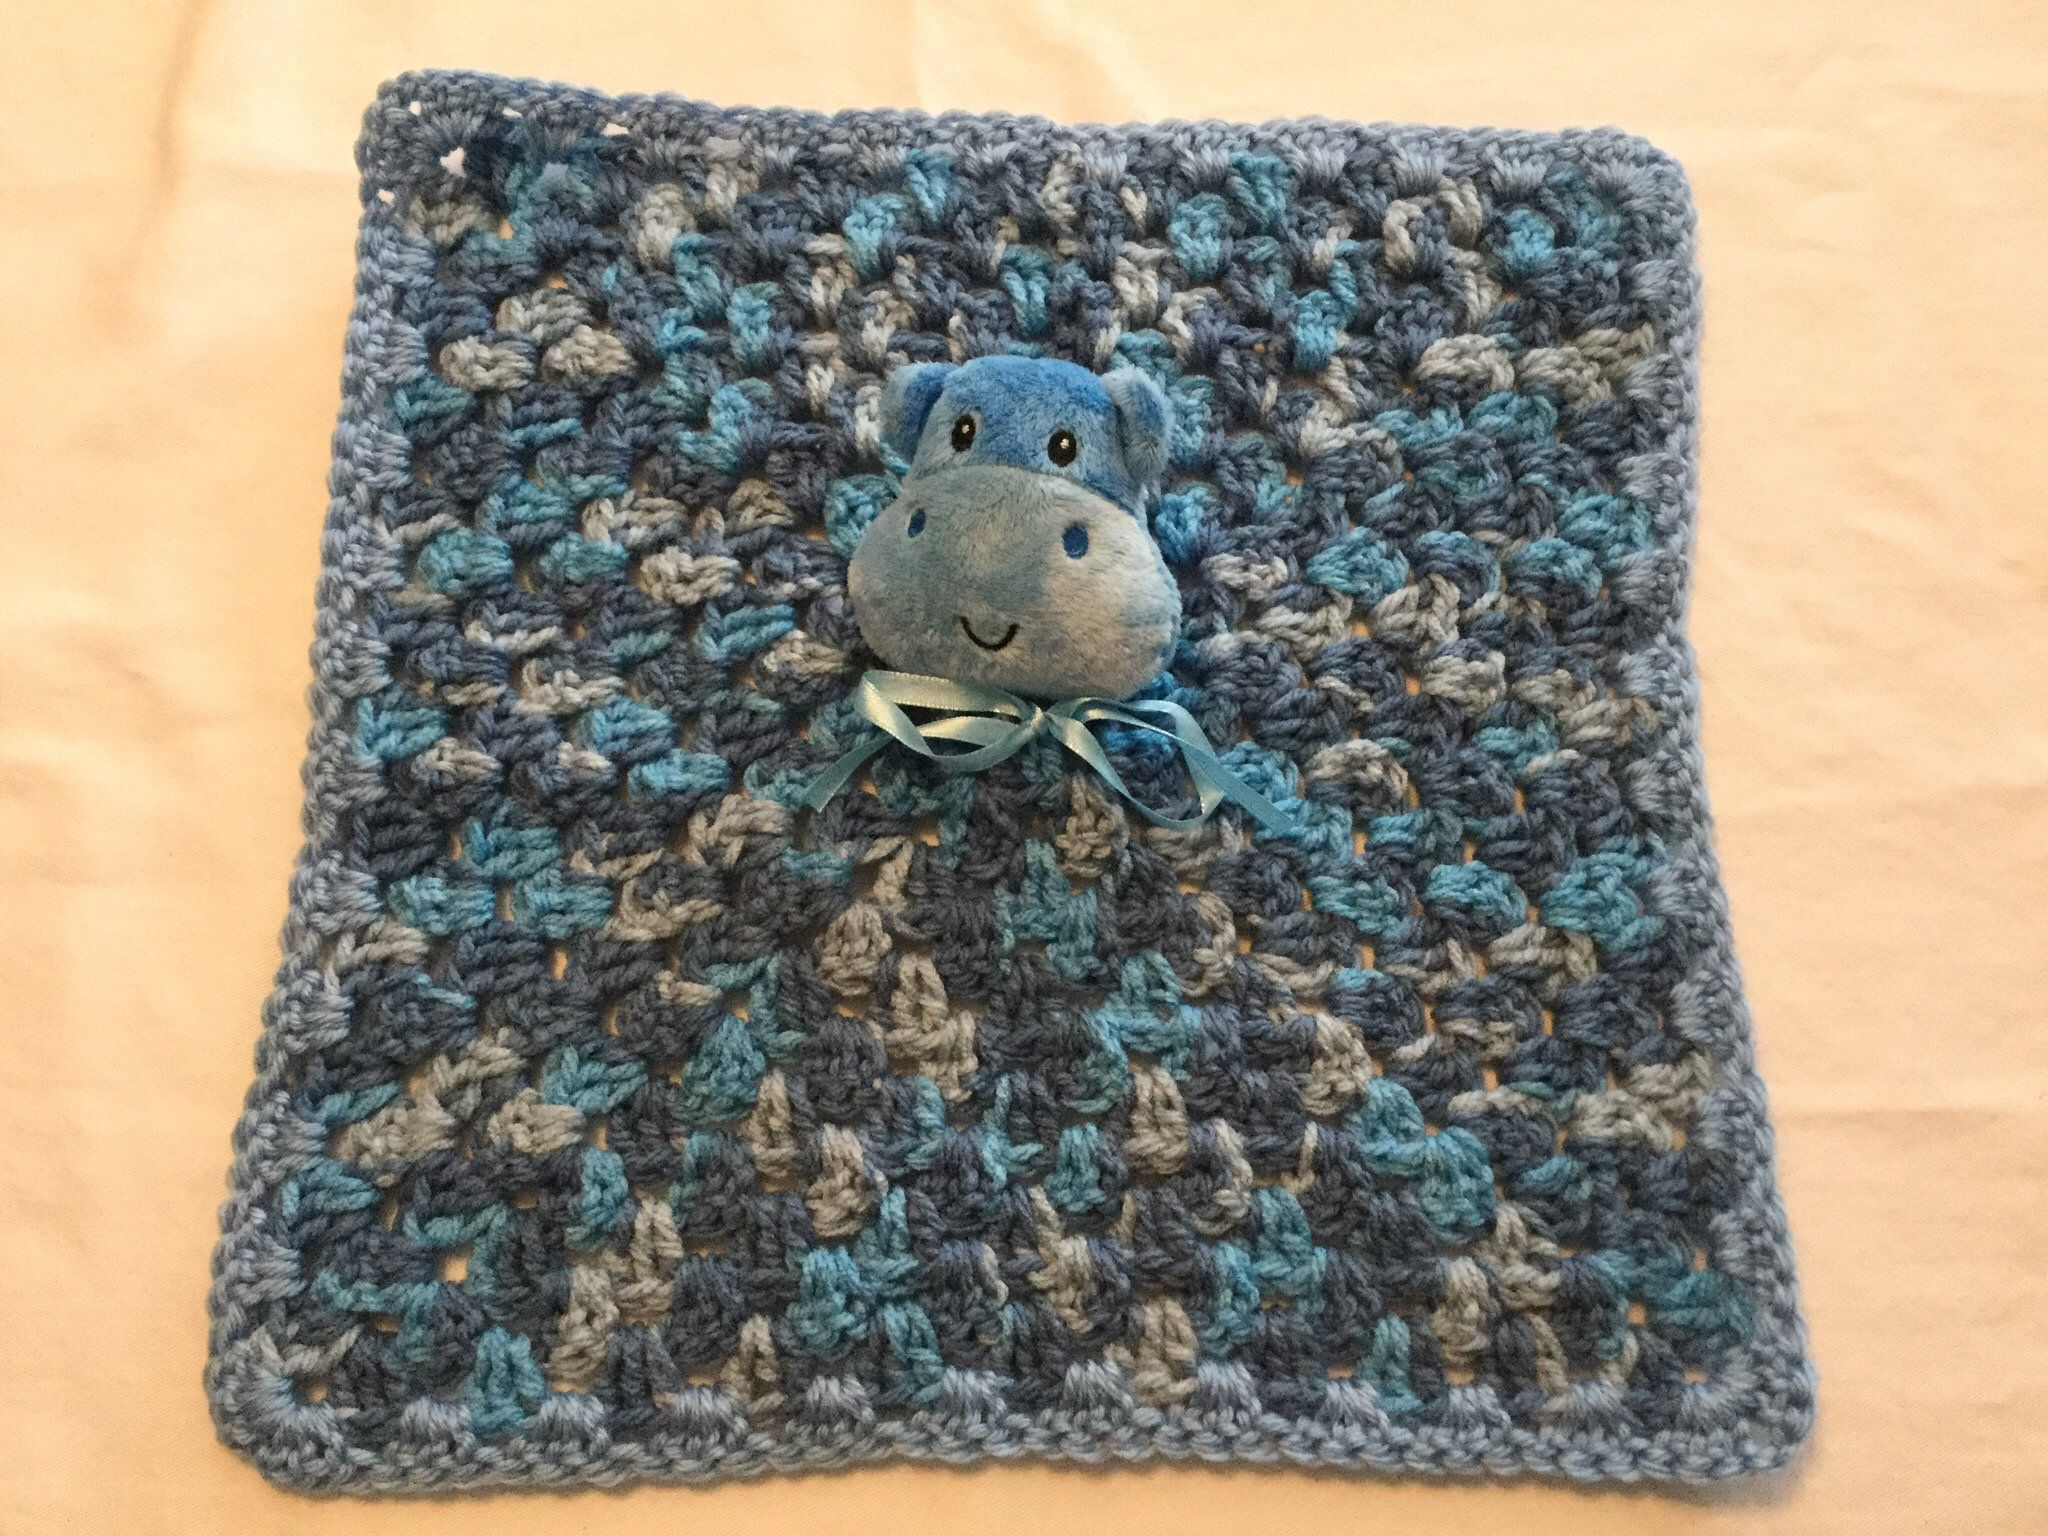 Hippo, Crochet, Security Blanket Lovely, Handmade, for Baby, Shower Gift, Baby Gift #crochetsecurityblanket Excited to share this item from my #etsy shop: Hippo, Crochet, Security Blanket Lovely, Handmade, for Baby, Shower Gift, Baby Gift #crochetsecurityblanket